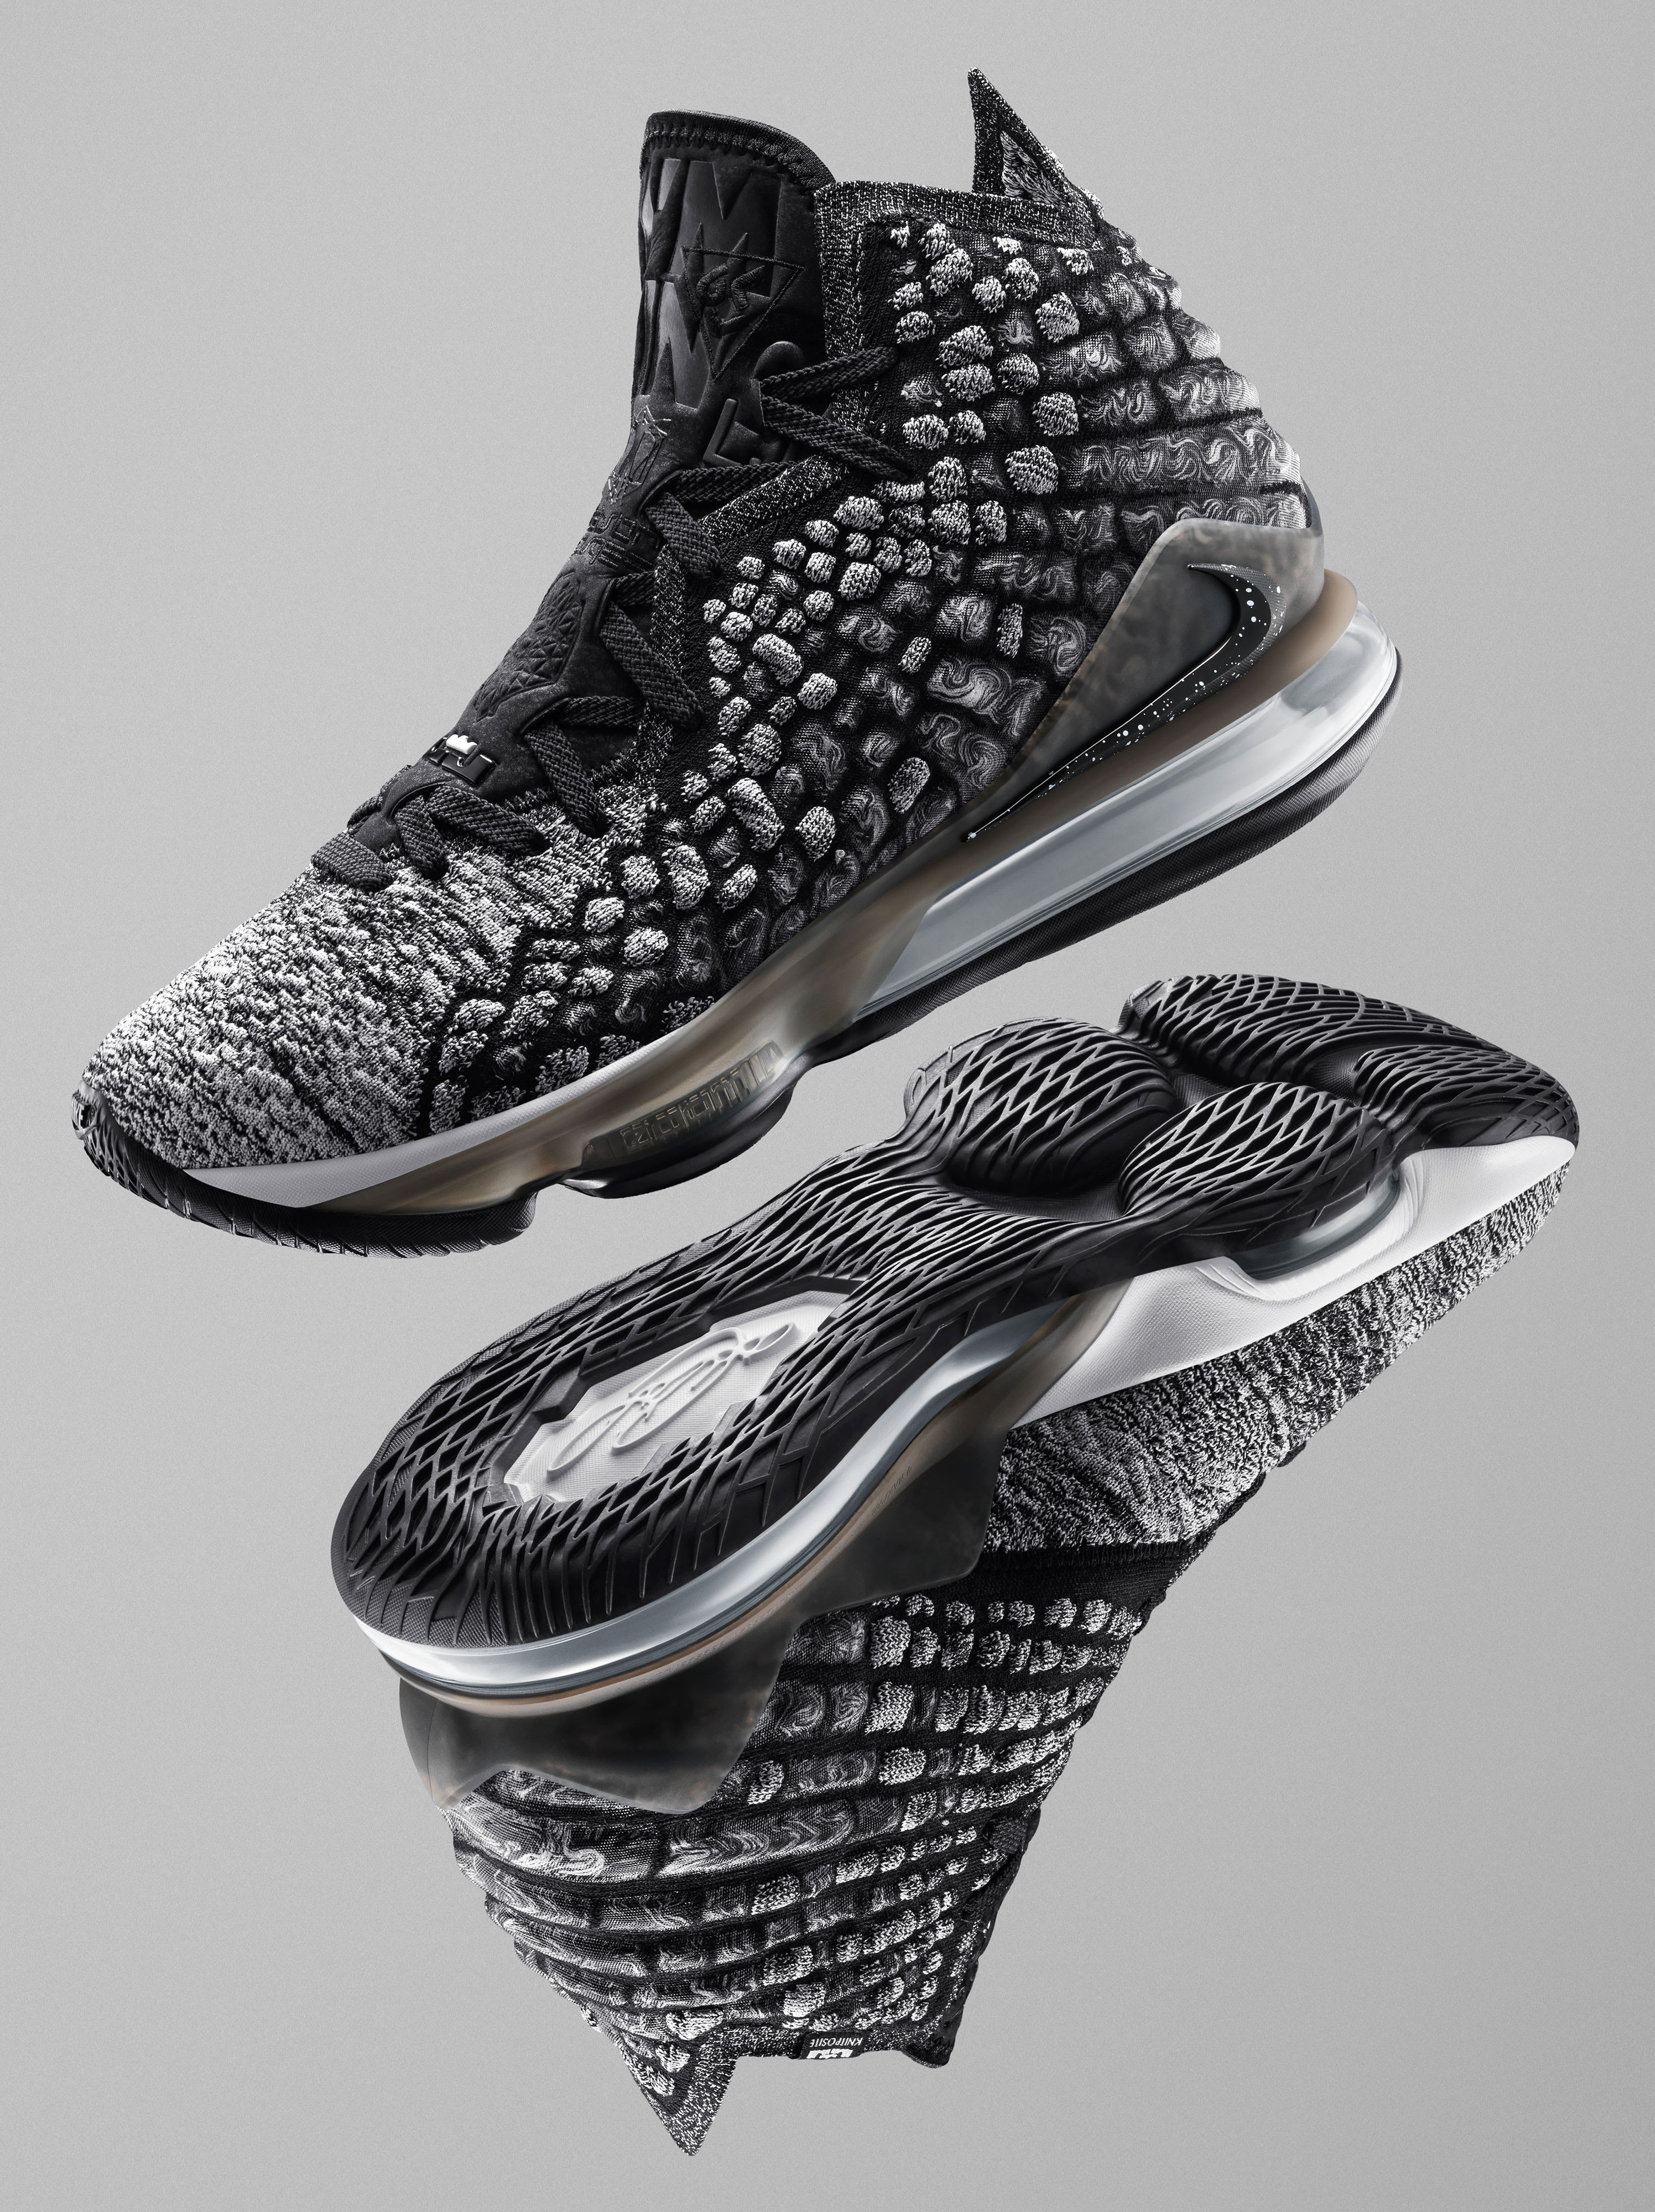 Nike LeBron 17 'Black/White' (Pair)